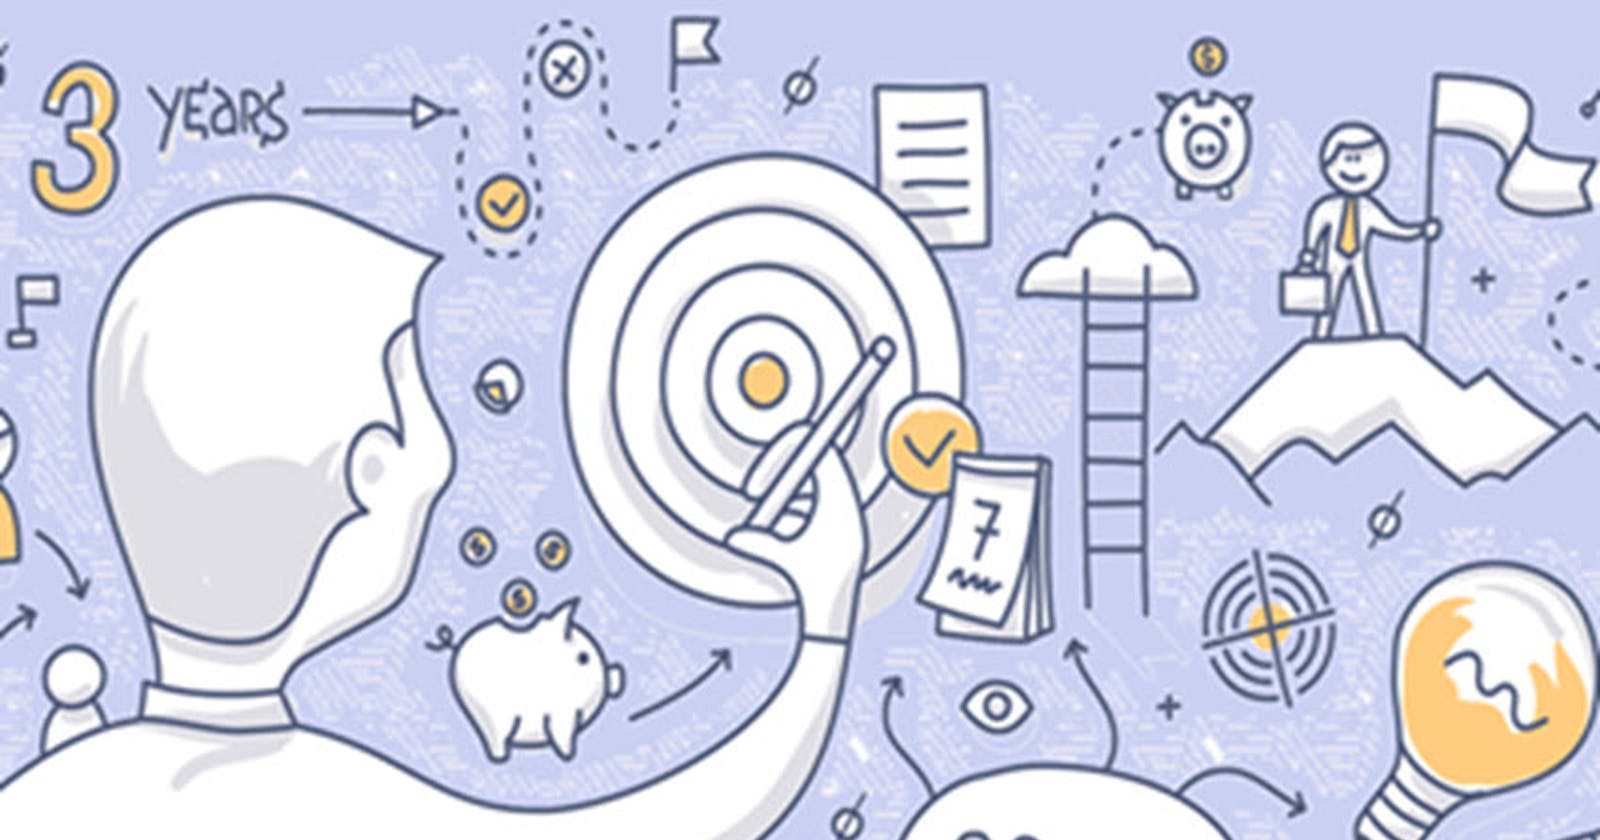 How to Achieve your Goals as a Software Engineer